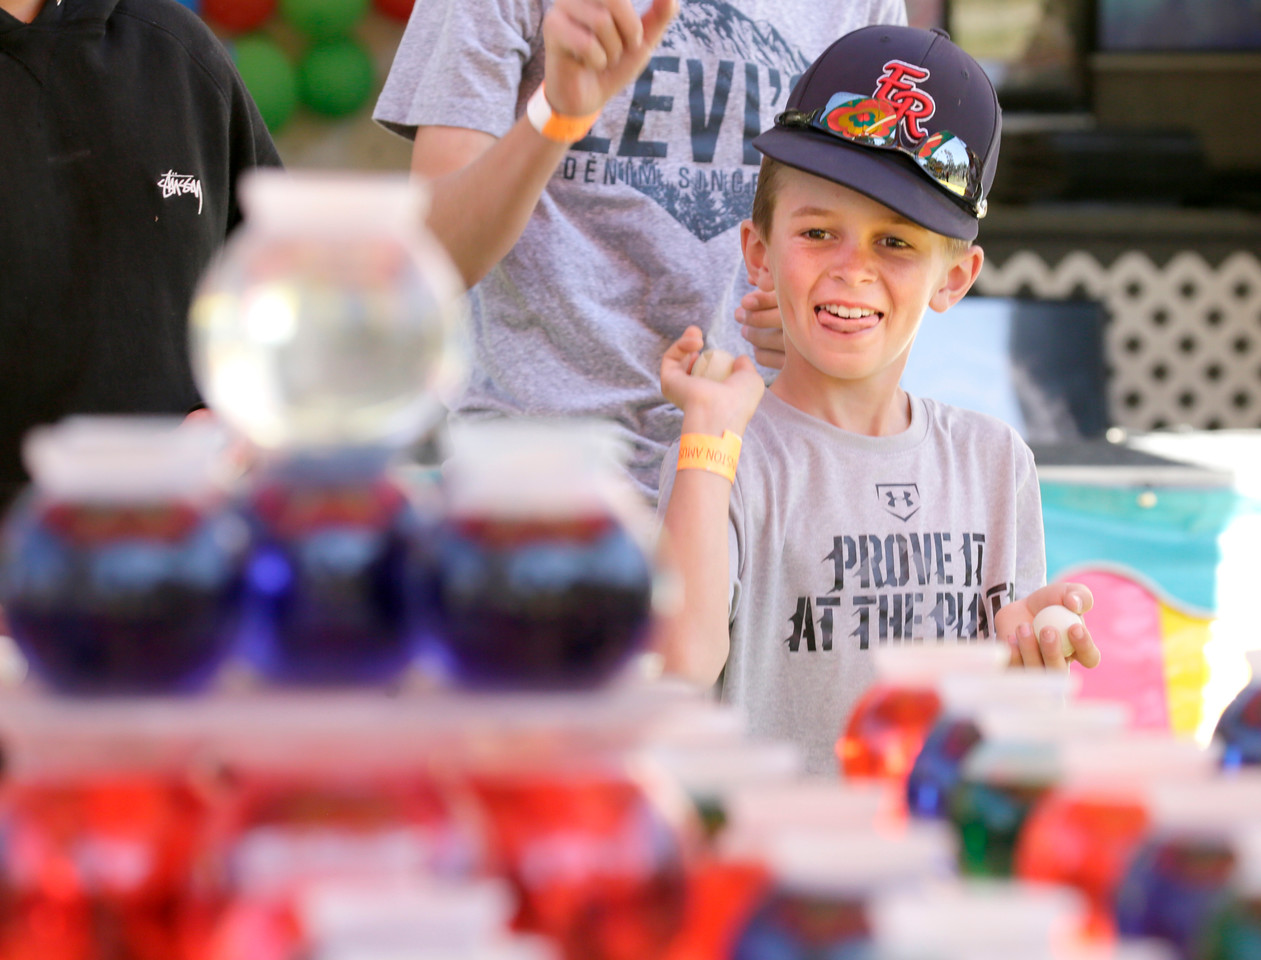 Shaun Walker — The Times-Standard  Parker Prior, 10, of Hydesville throws a ball at the Fortuna Rodeo carnival on Friday. The rodeo continues today with Fortuna Kiwanis pancake breakfast at 7 a.m., a parade down Main Street and more carnival at noon, rodeo action at 2 p.m., and gates open for Bulls, Broncs, Bands, and Brews at 6 p.m. at the Rohner Park Rodeo Grounds. For more information, go to fortunarodeo.com.